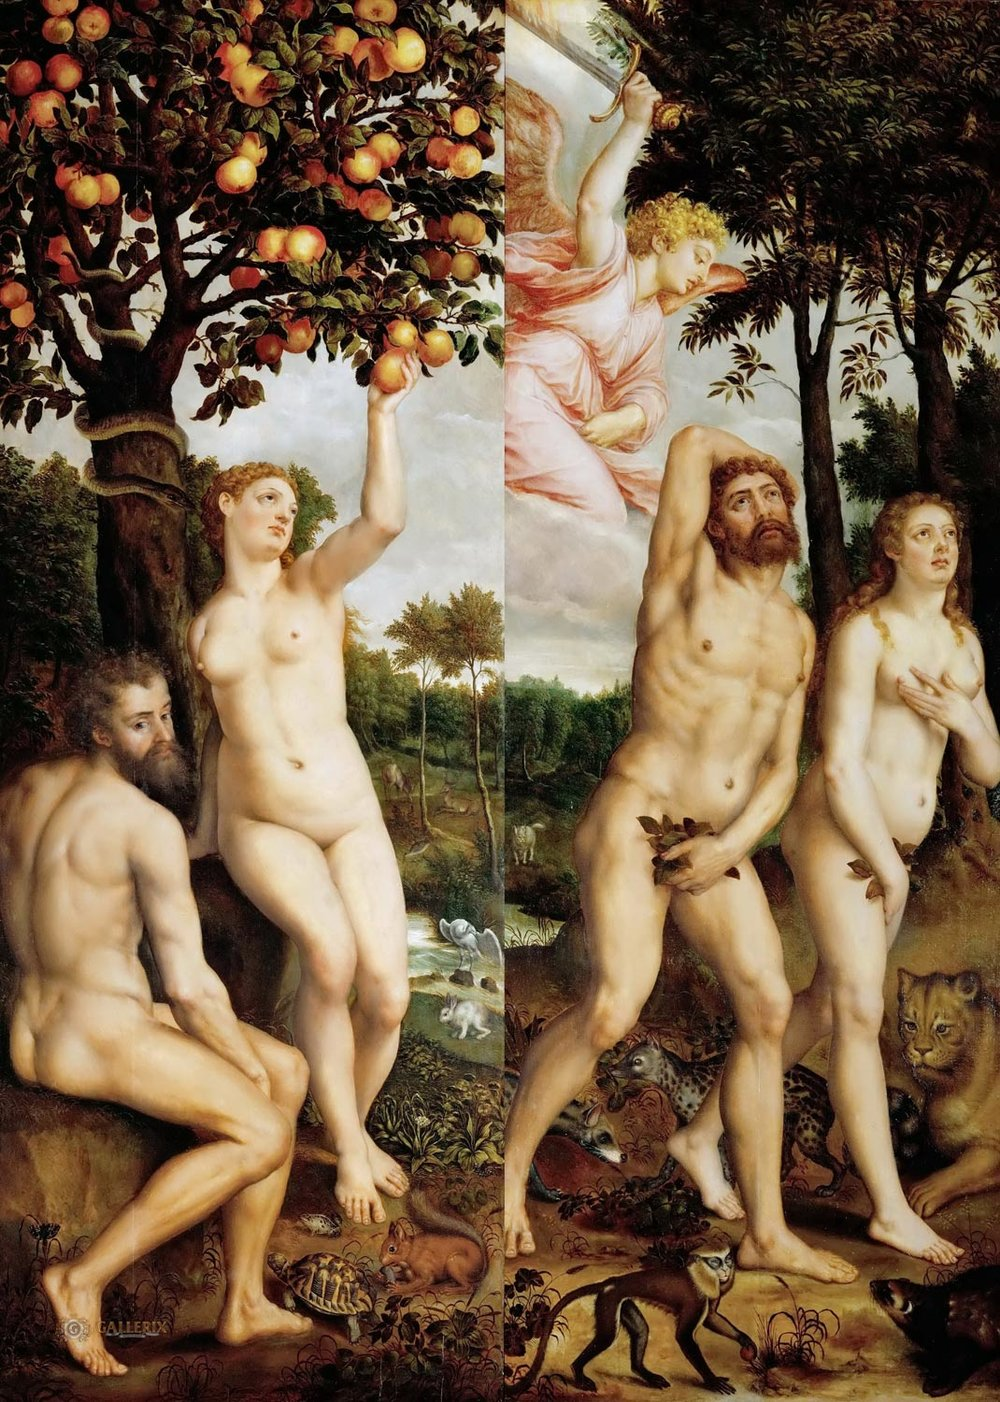 Fall of Man and Expulsion from Paradise, Michiel Coxcie, ca. 1550